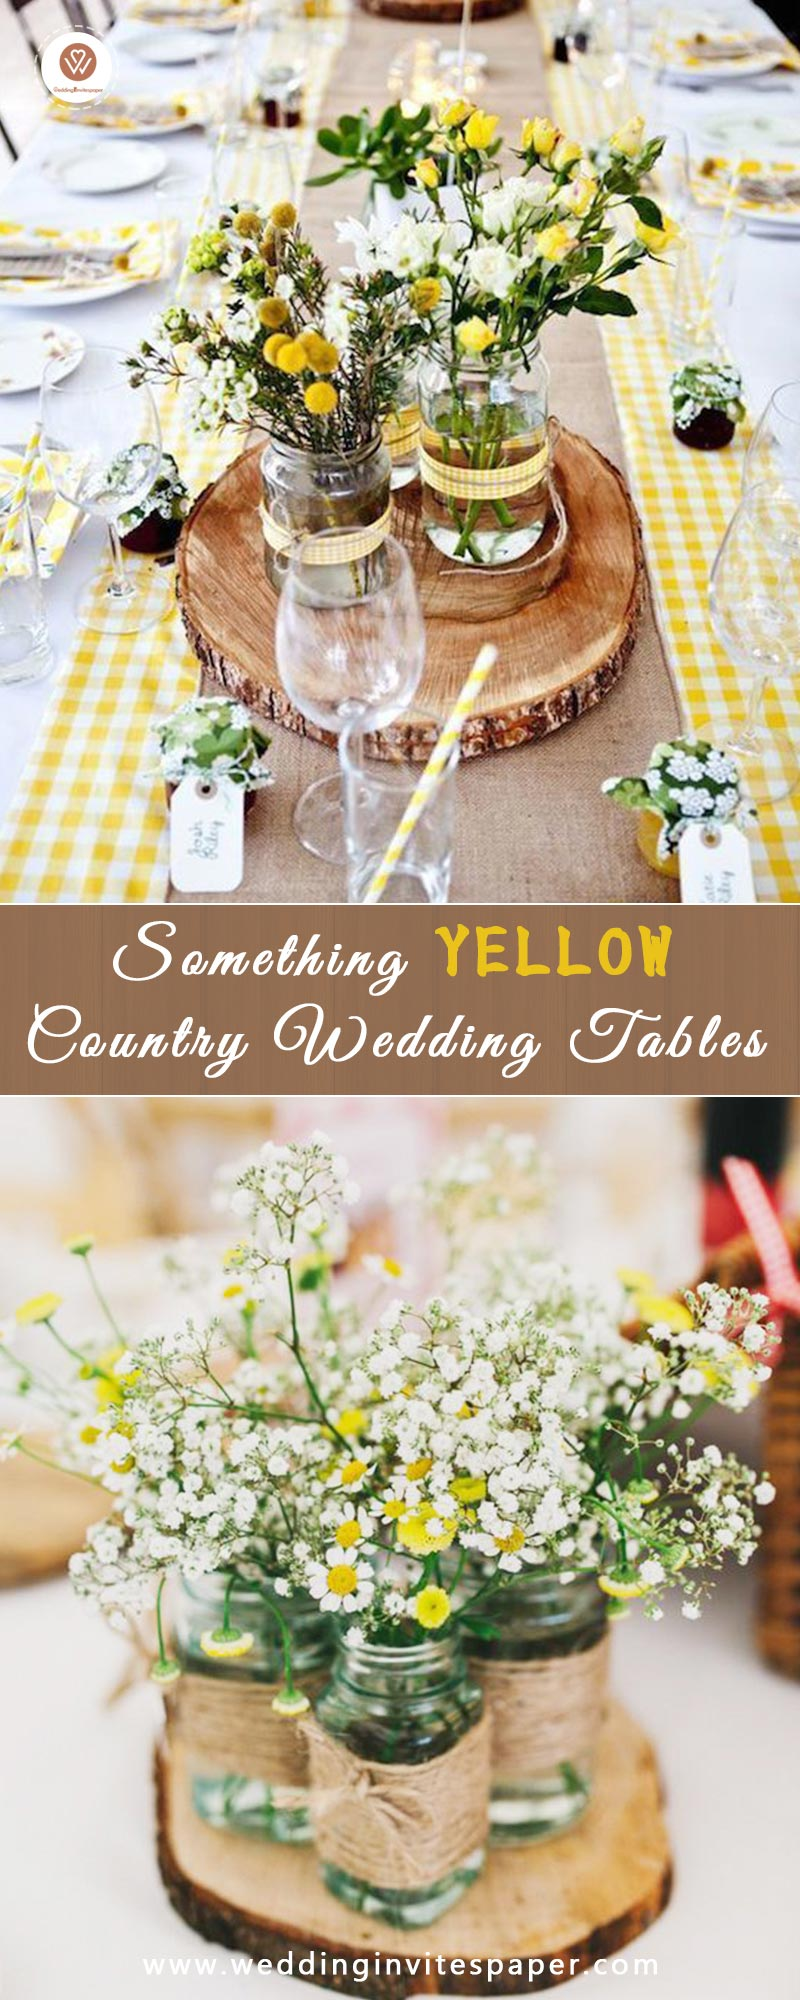 Something-YELLOW-Country-Wedding-Tables.jpg